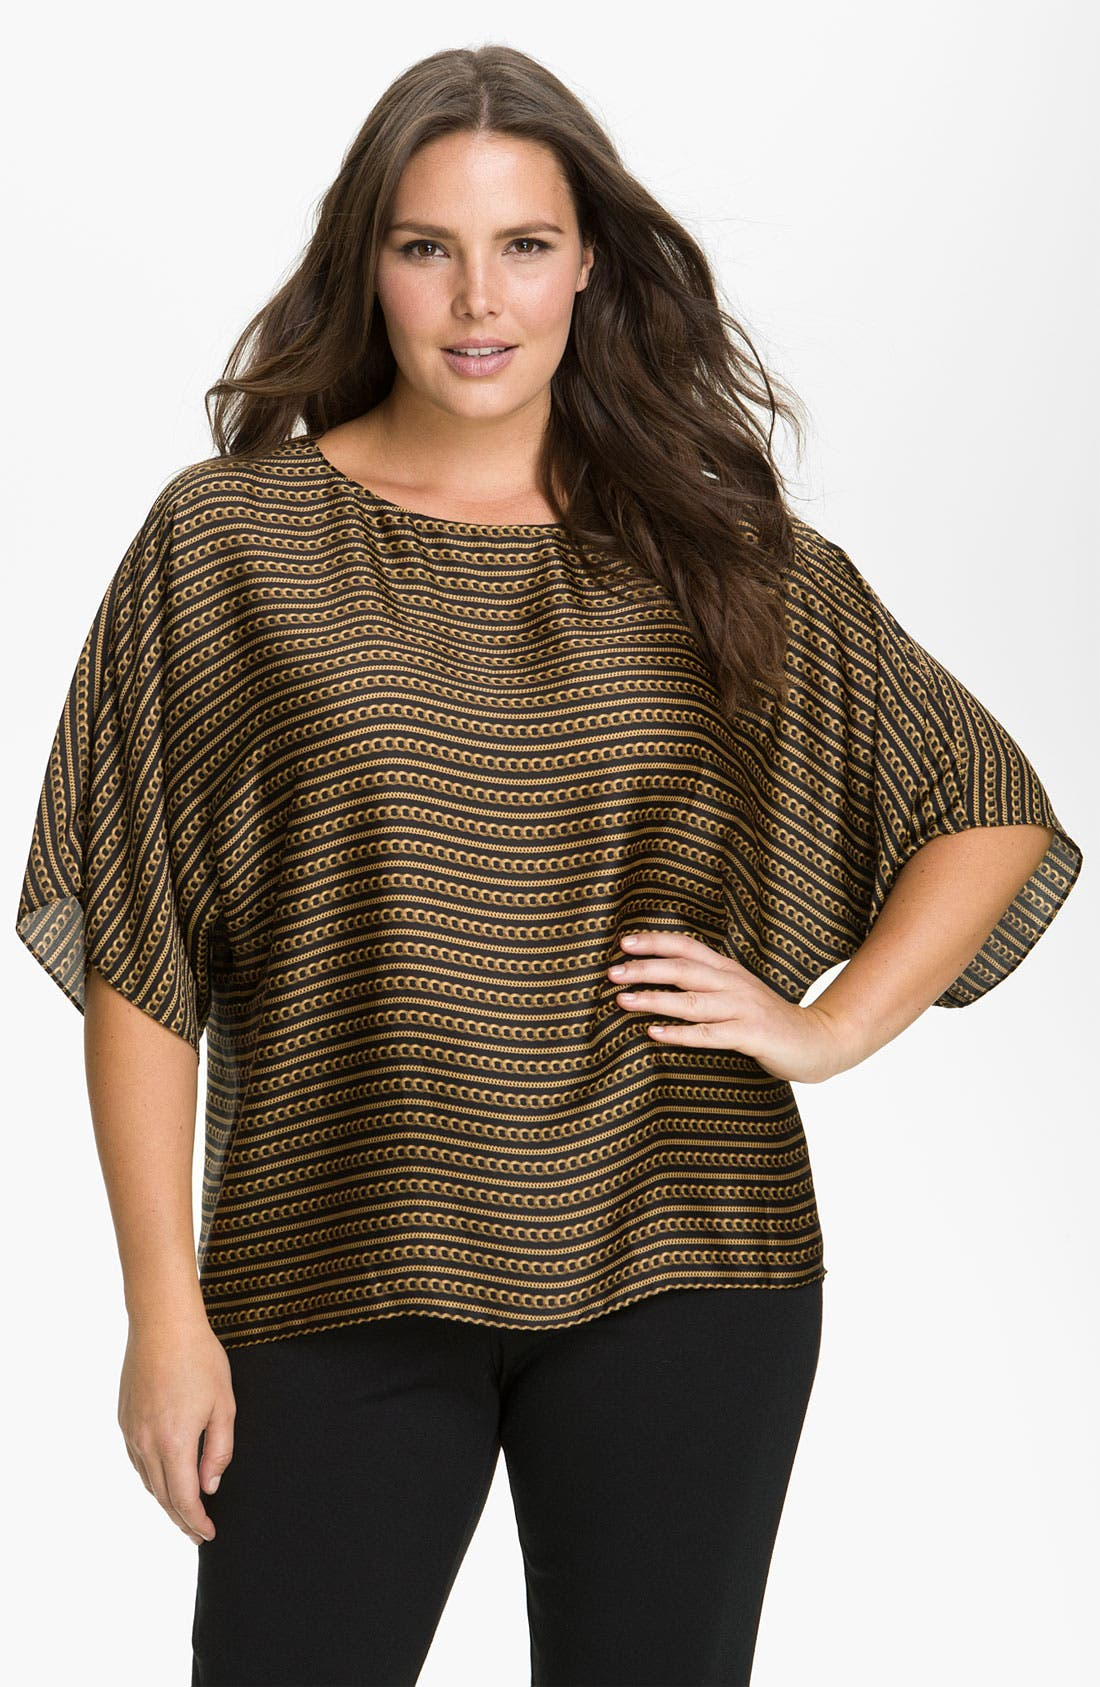 Main Image - MICHAEL Michael Kors 'Striped Chain' Dolman Sleeve Top (Plus)